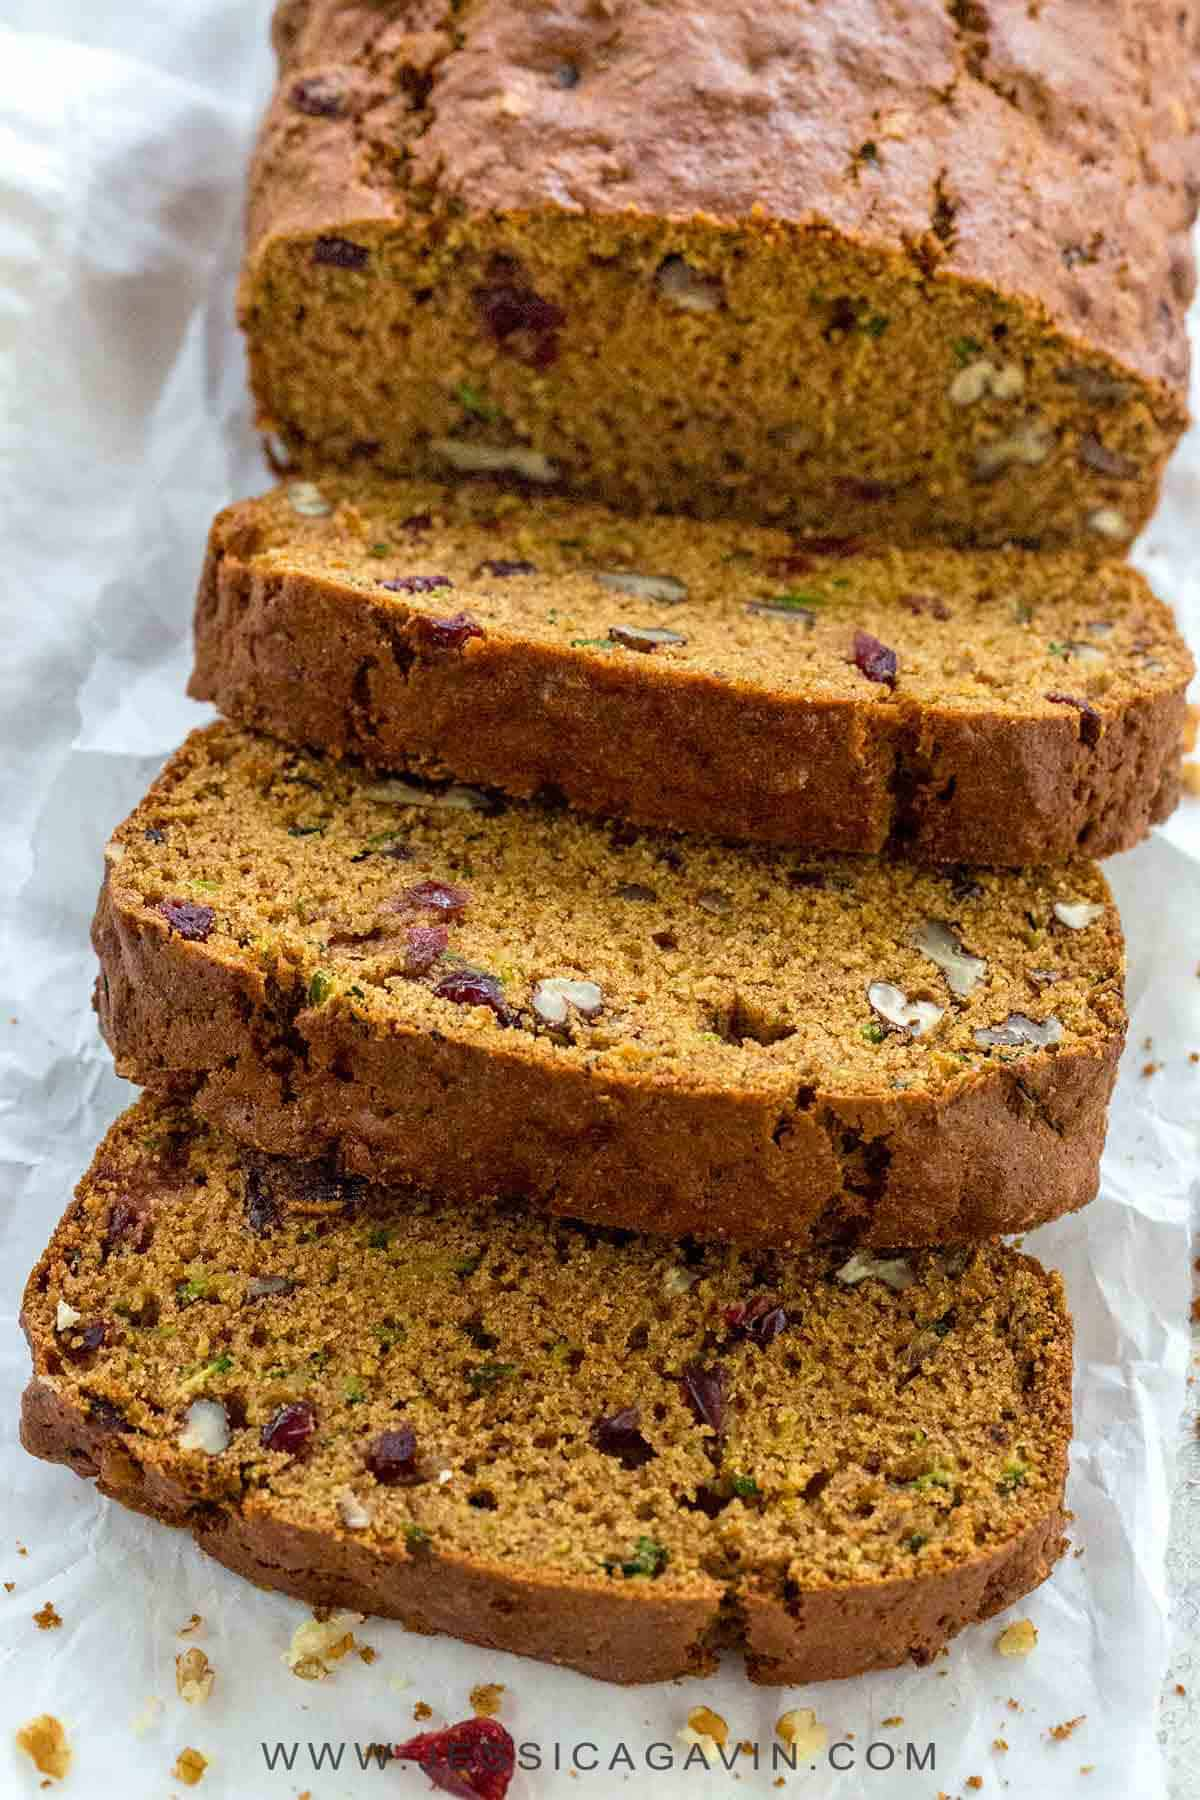 Zucchini bread is an easy to make, tender treat with a cake-like texture. Each slice is packed with healthy grated zucchini, pecans, cranberries, cinnamon, nutmeg, and whole wheat flour. #zucchinibread #bread #zucchini